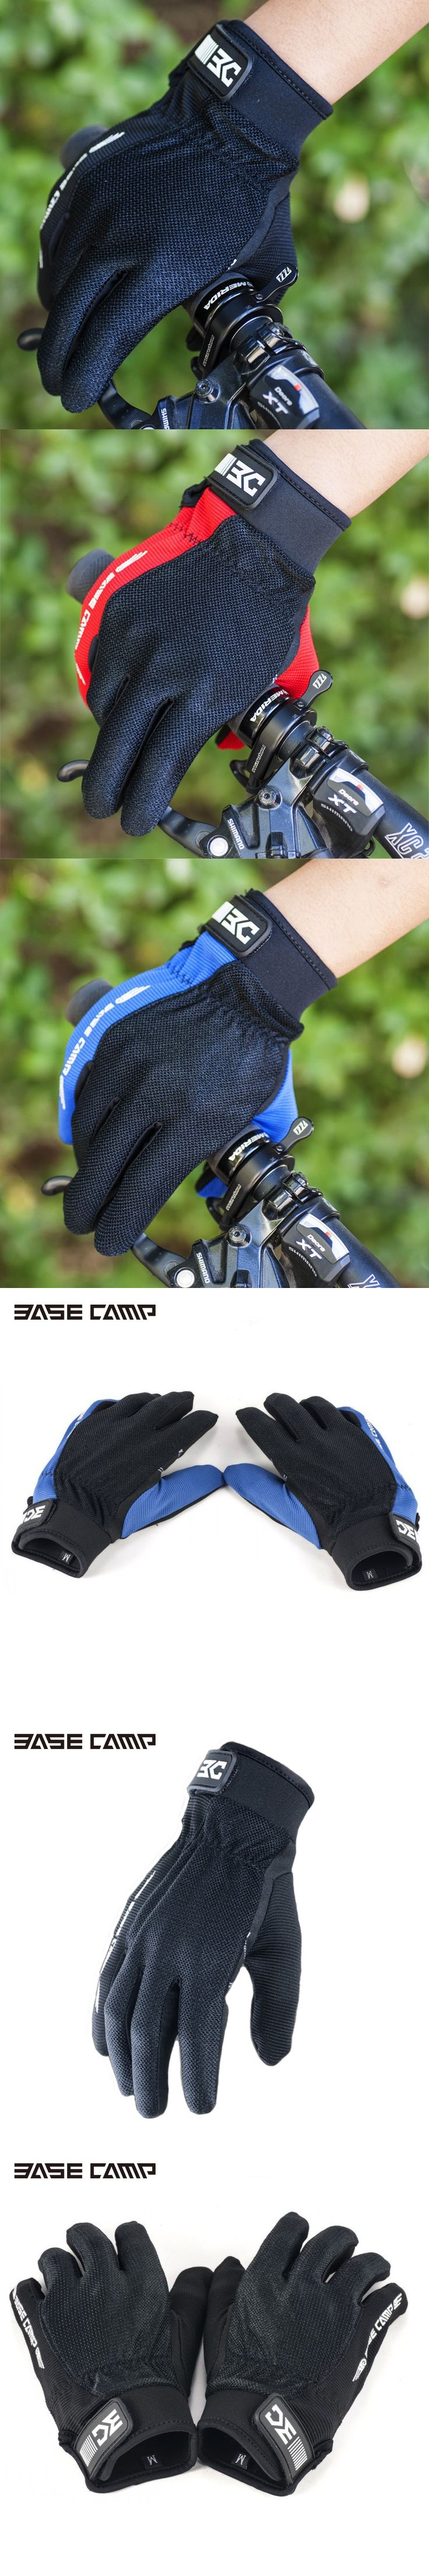 Basecamp New Impermeable Esponja Bicicleta Guantes De Ciclismo 2016 Mujer MTB Bike Full Finger Cycling Gloves Men Woman Luvas